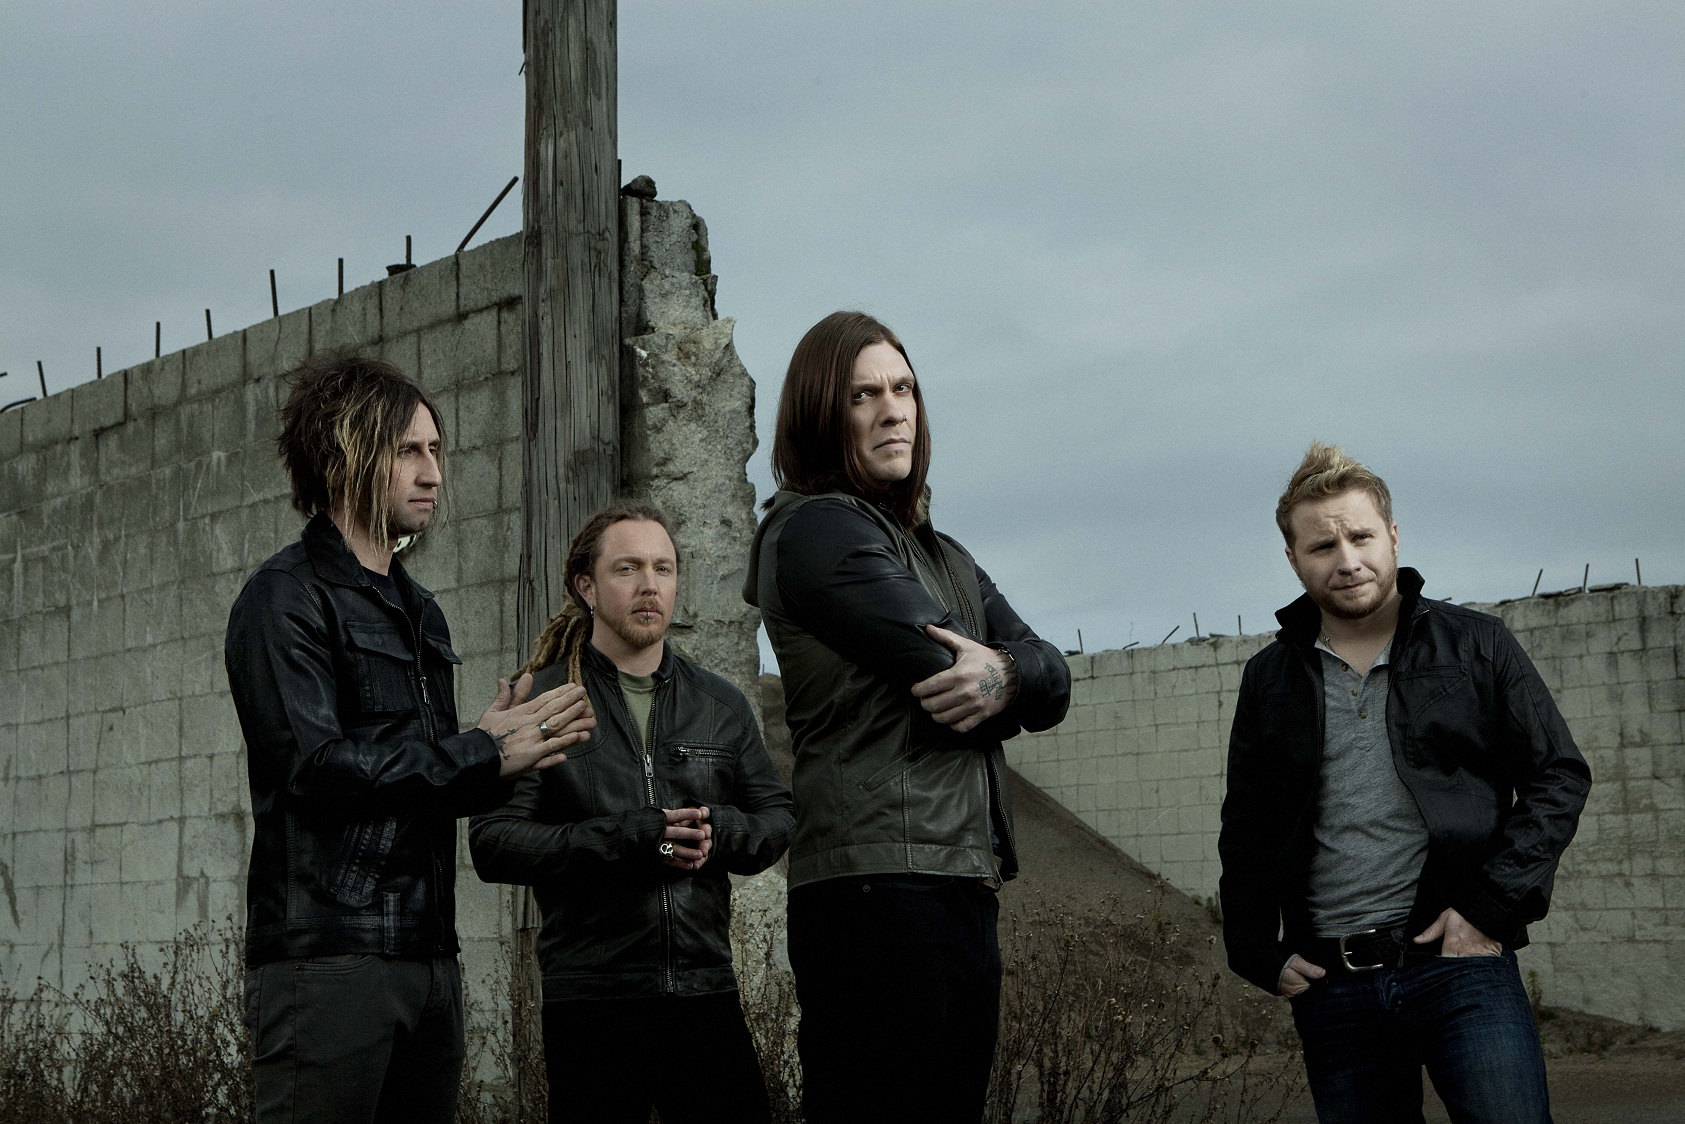 SHINEDOWN Release Offical 'Bully' Video Clip